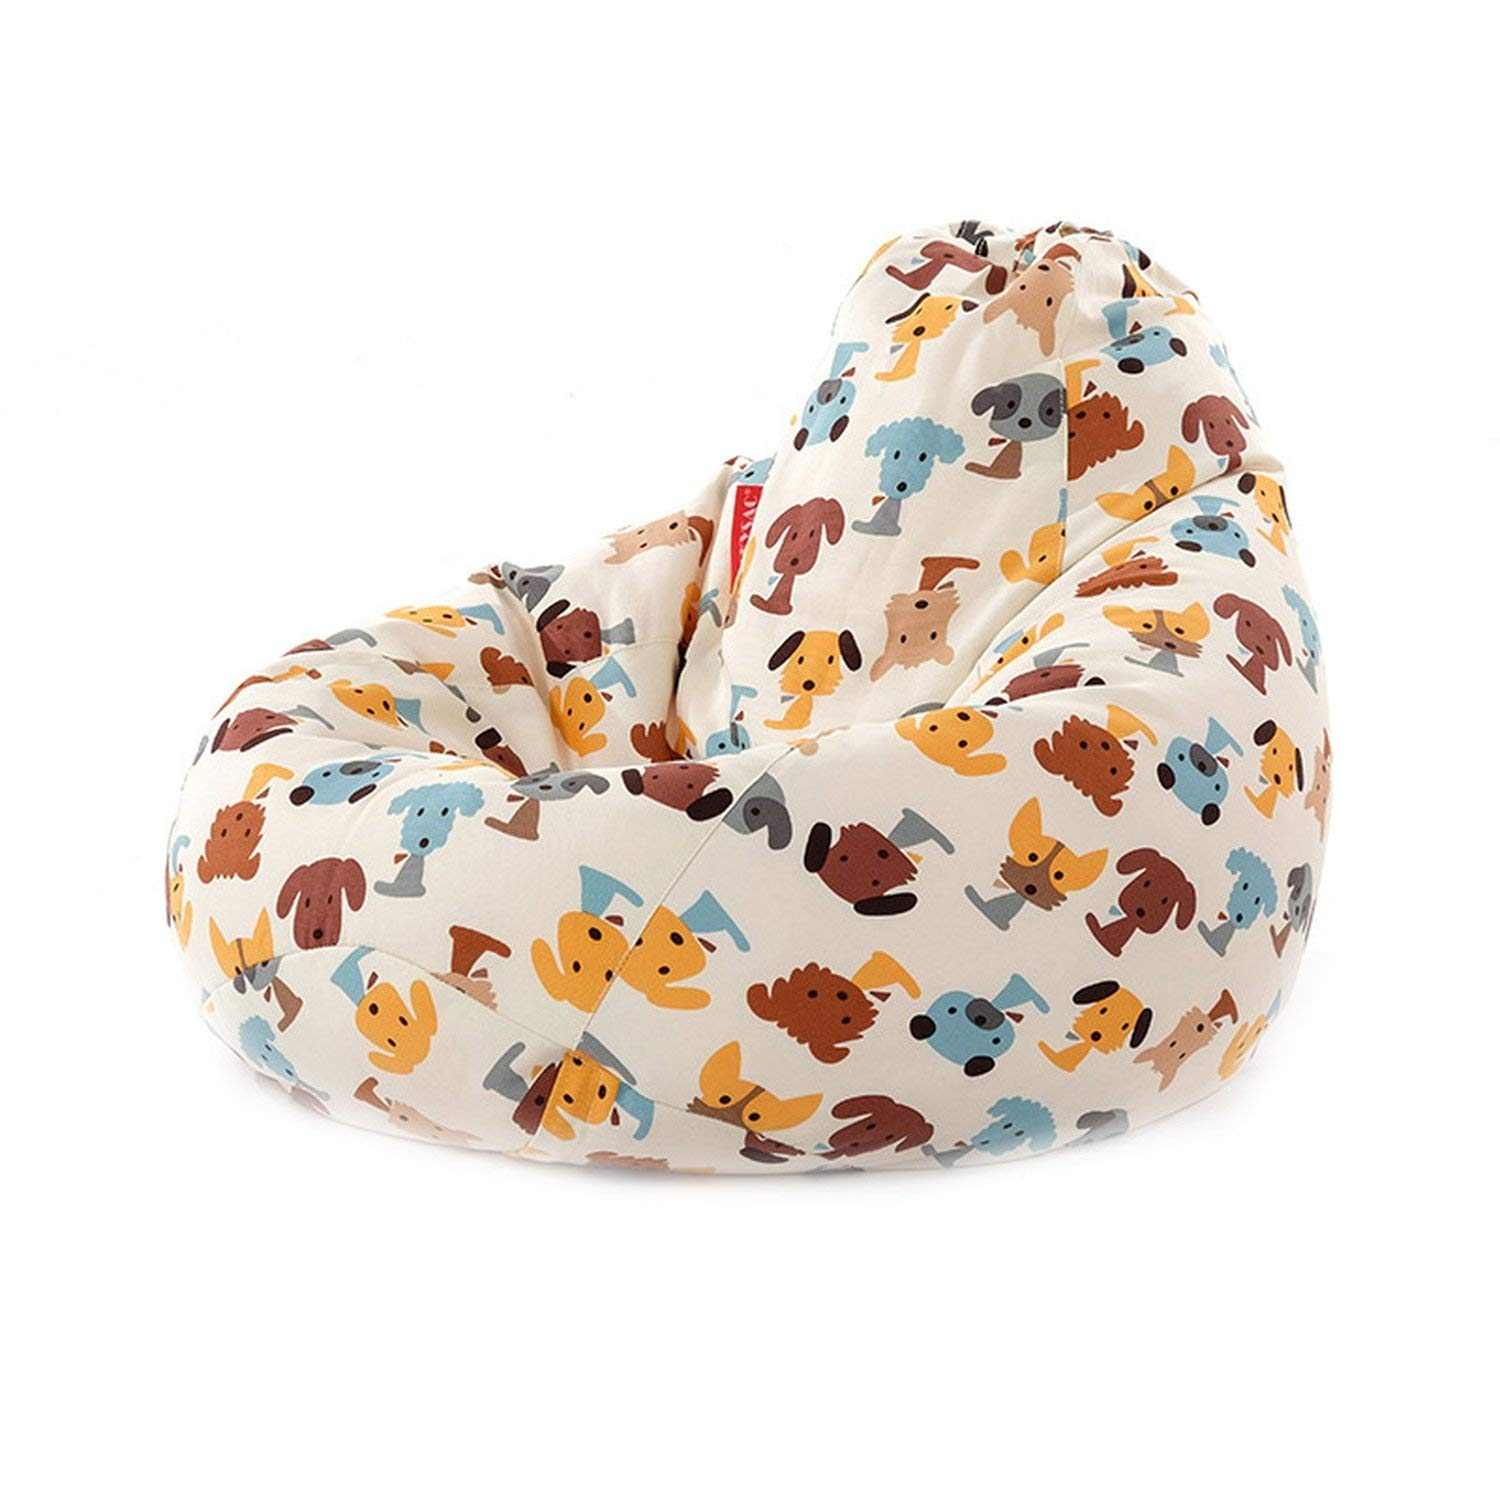 Amazon.com: Cute Animal Bean Bag Lounger Sofa Cover Chairs ...